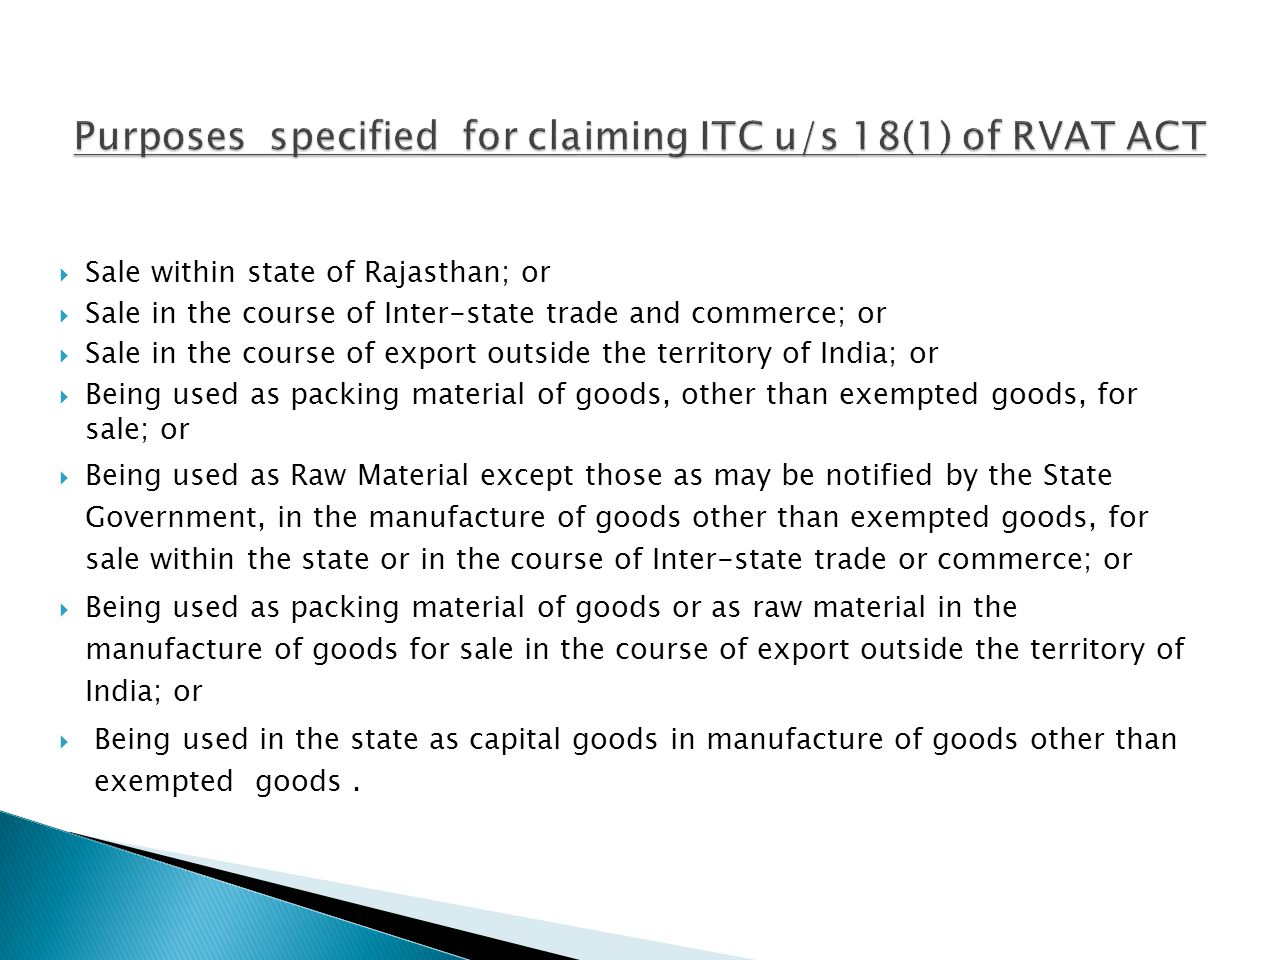 Purposes specified for claiming ITC u/s 18(1) of RVAT ACT